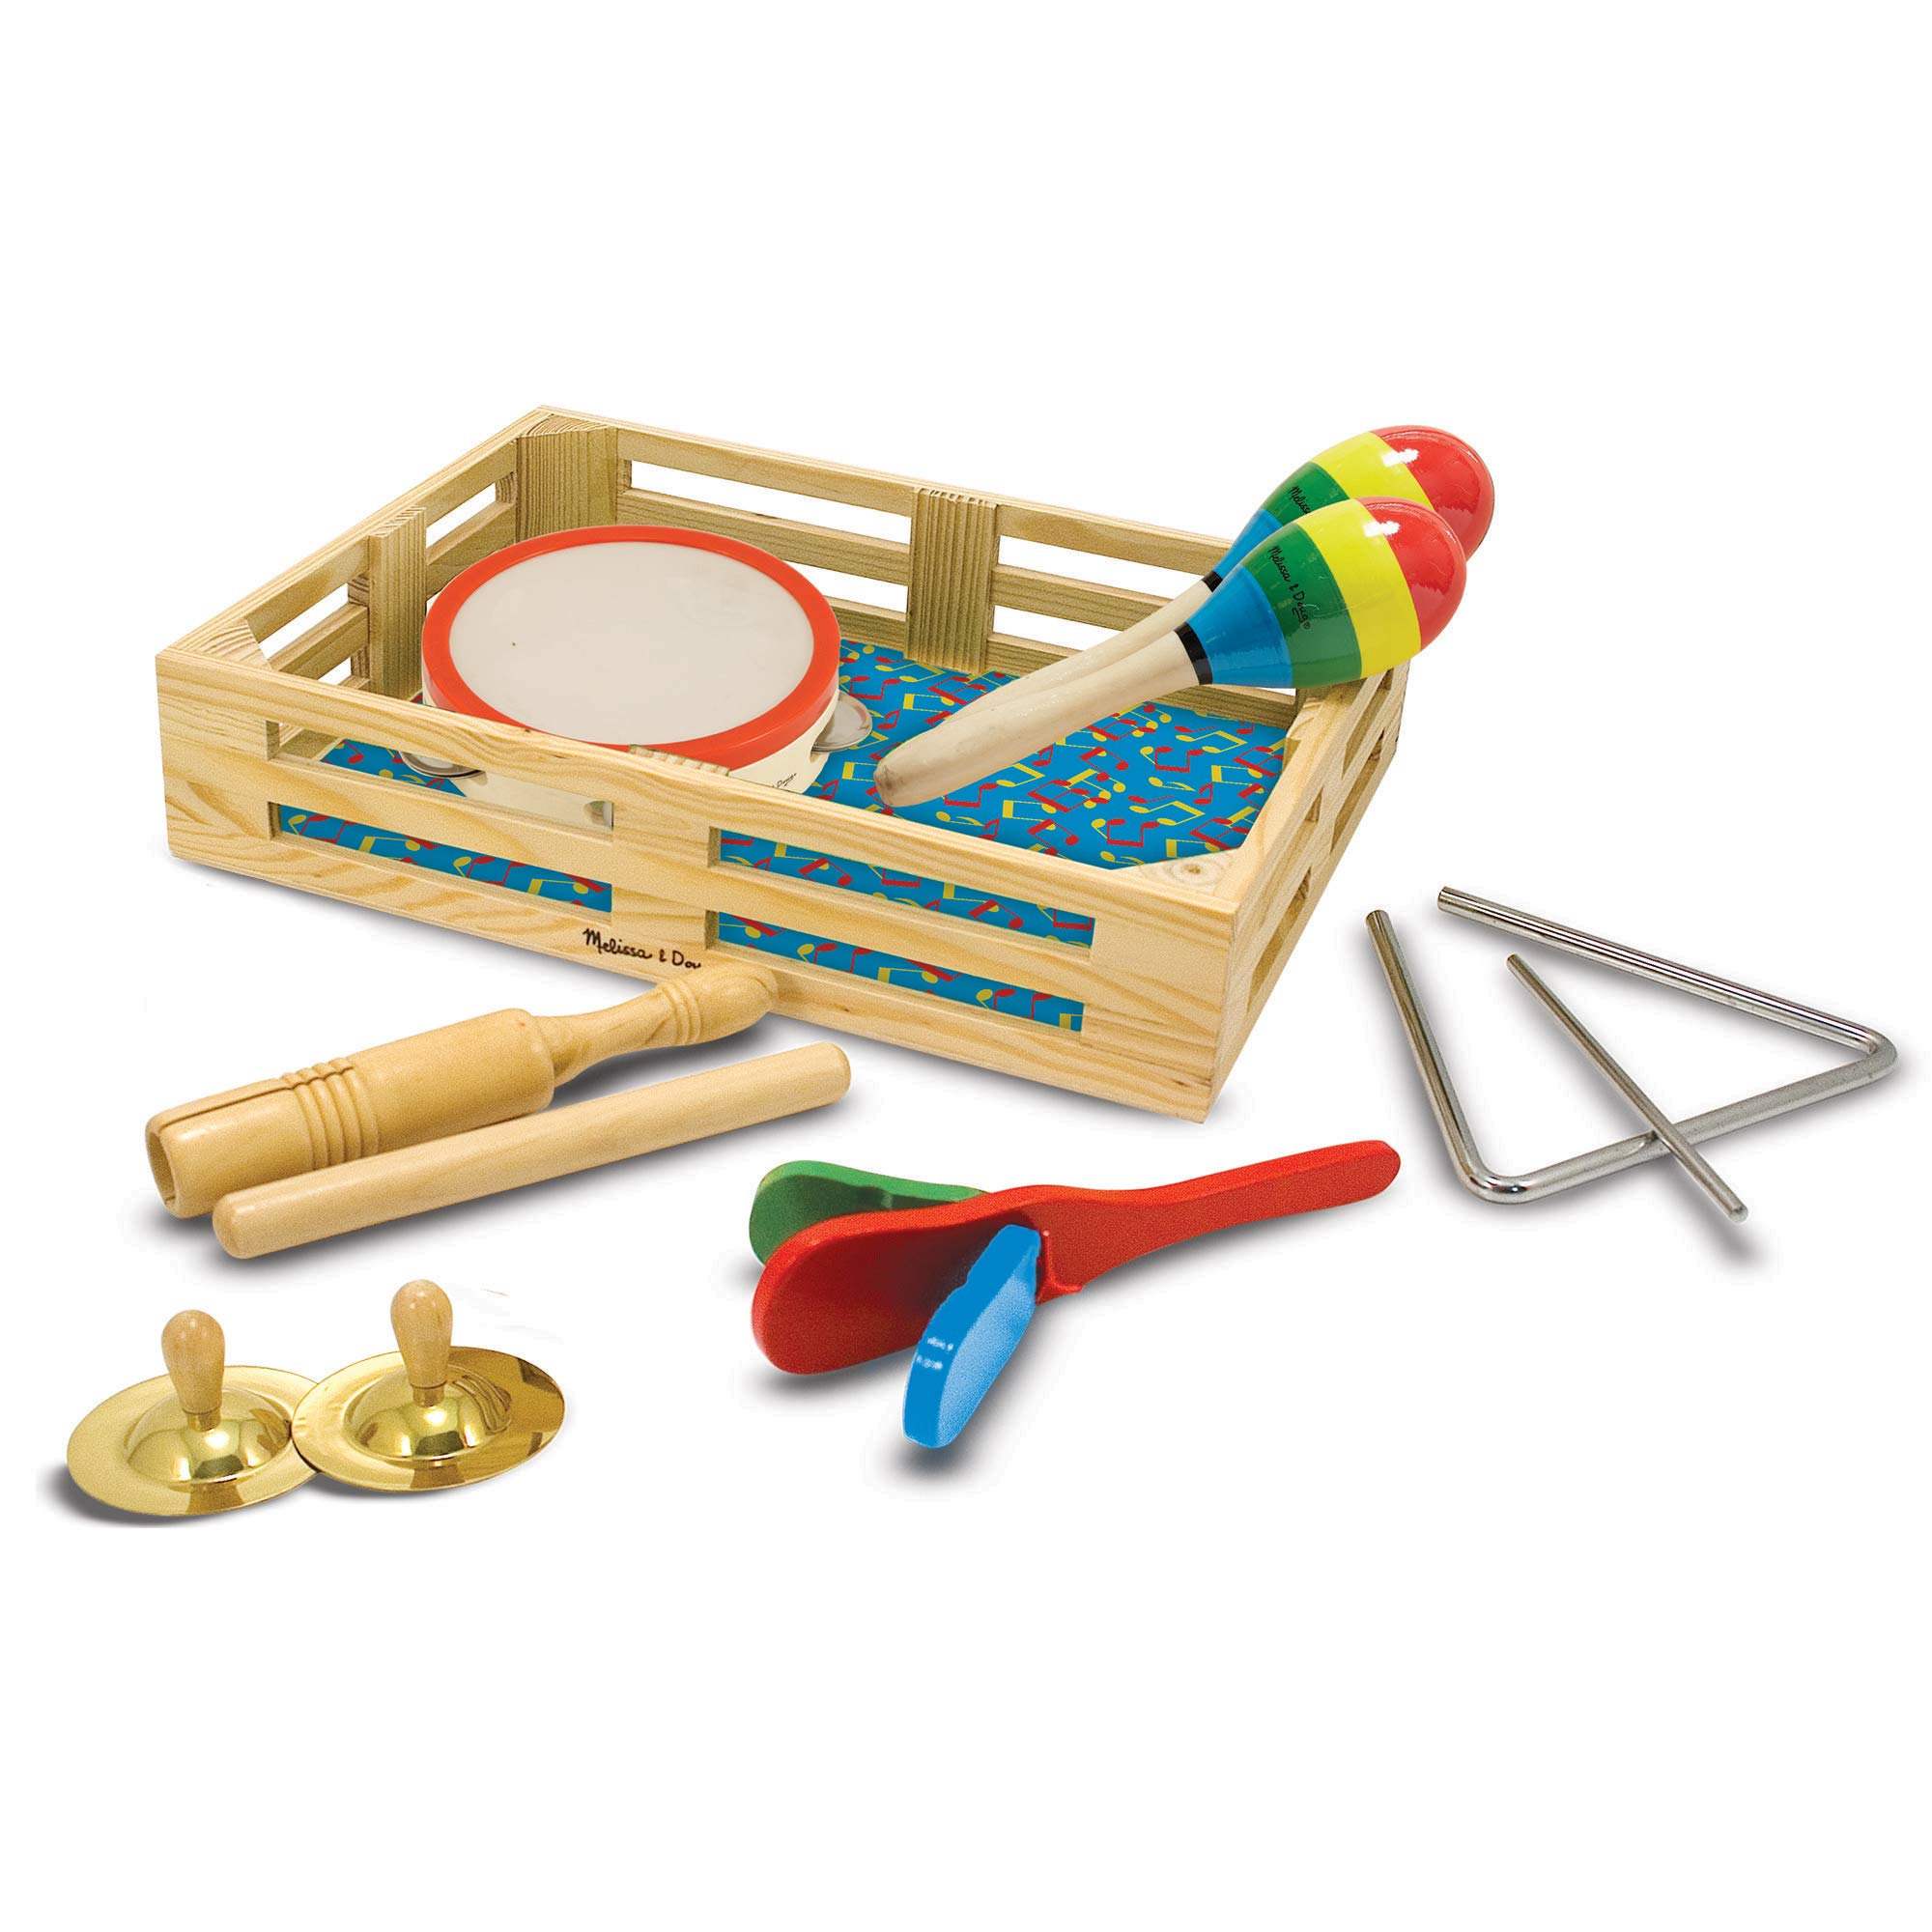 """Melissa & Doug Band-in-a-Box Clap! Clang! Tap! Musical Instruments (Various Instruments, Wooden Storage Crate, 10-Piece Set, 3"""" H x 11.3"""" W x 14.9"""" L)"""